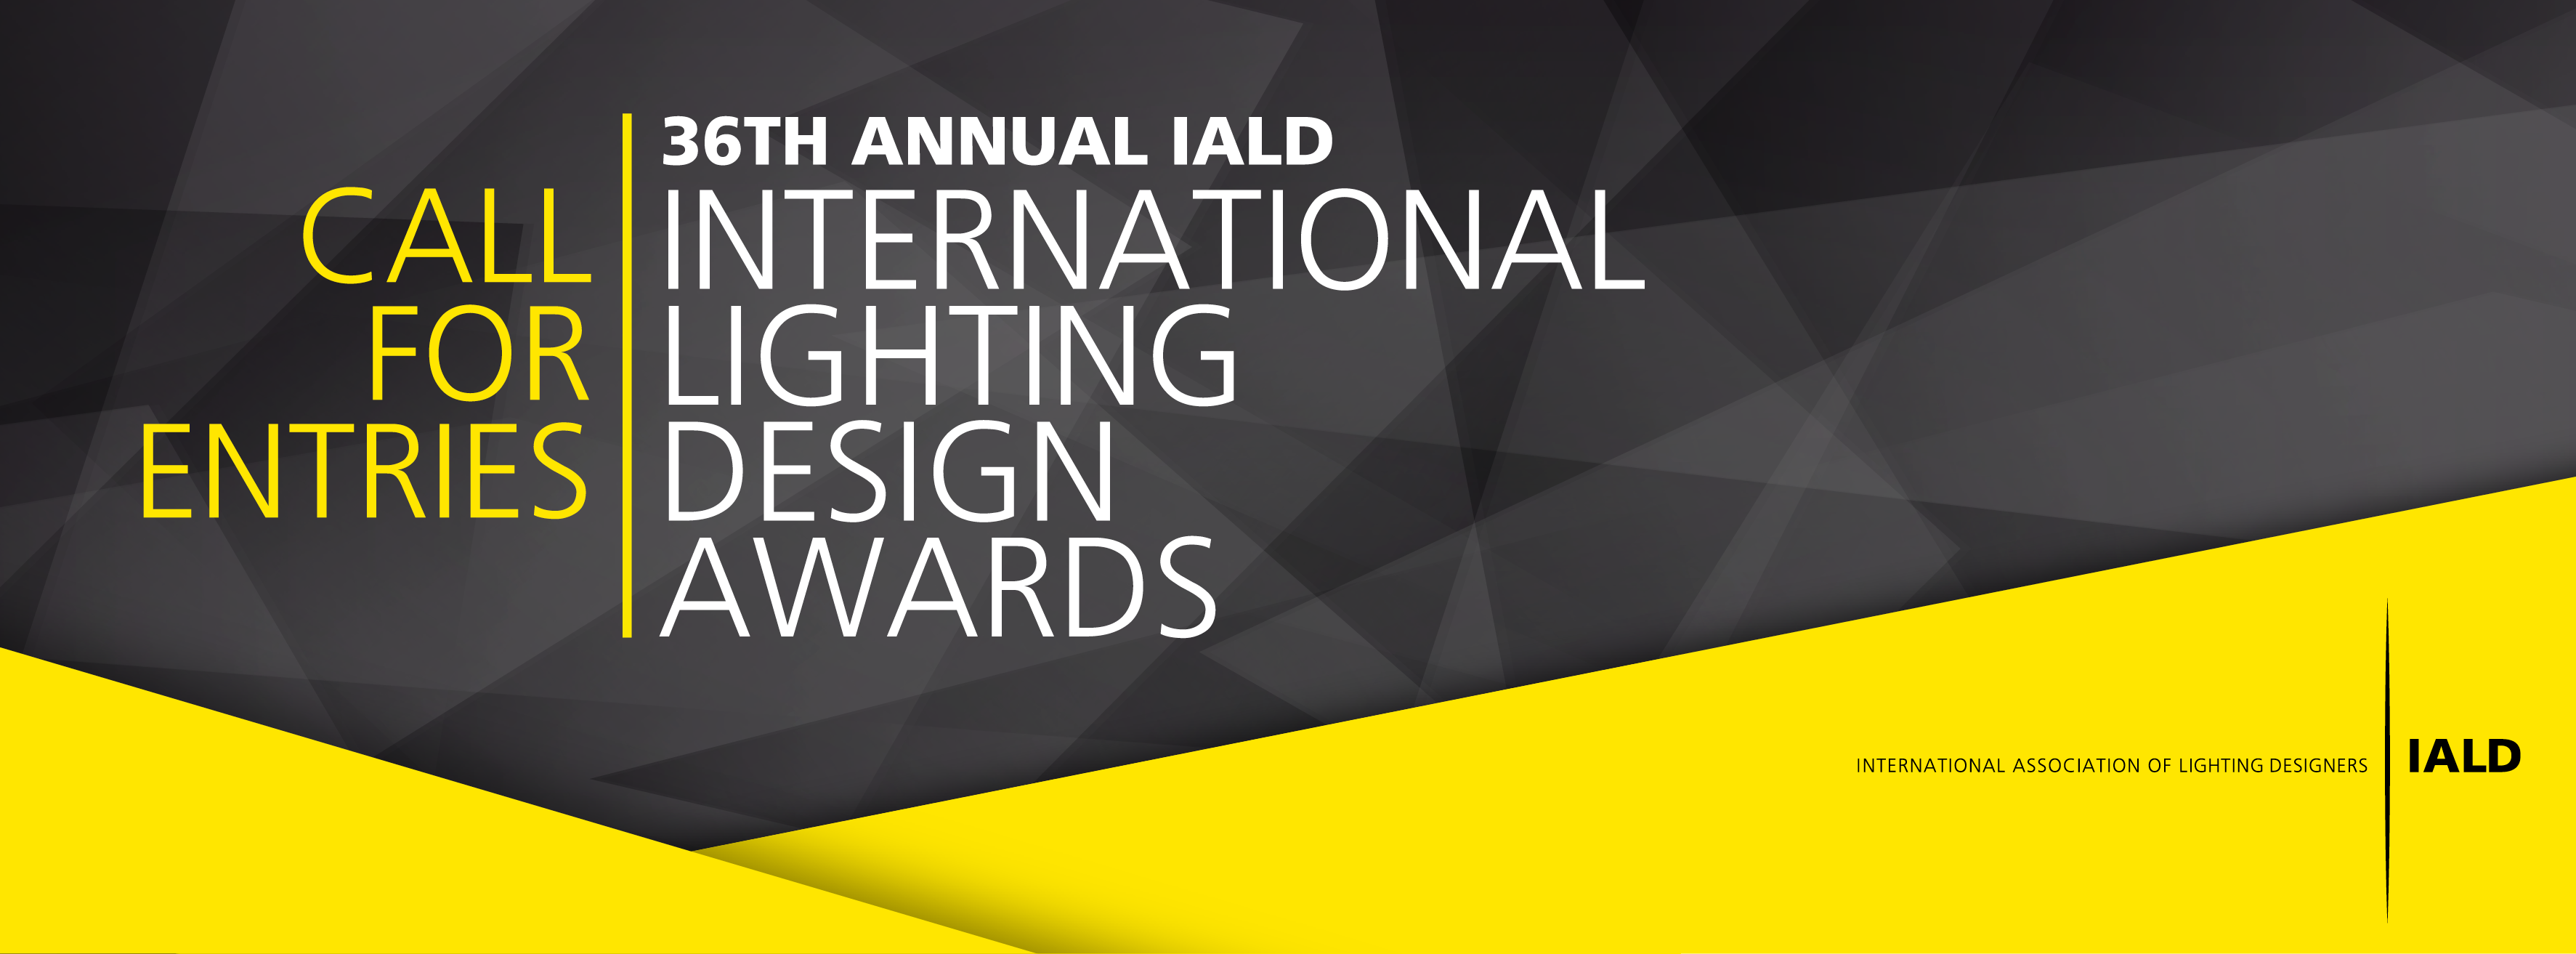 36th Annual IALD International Lighting Design Awards Call for Entries Banner & IALD - Home - International Association of Lighting Designers